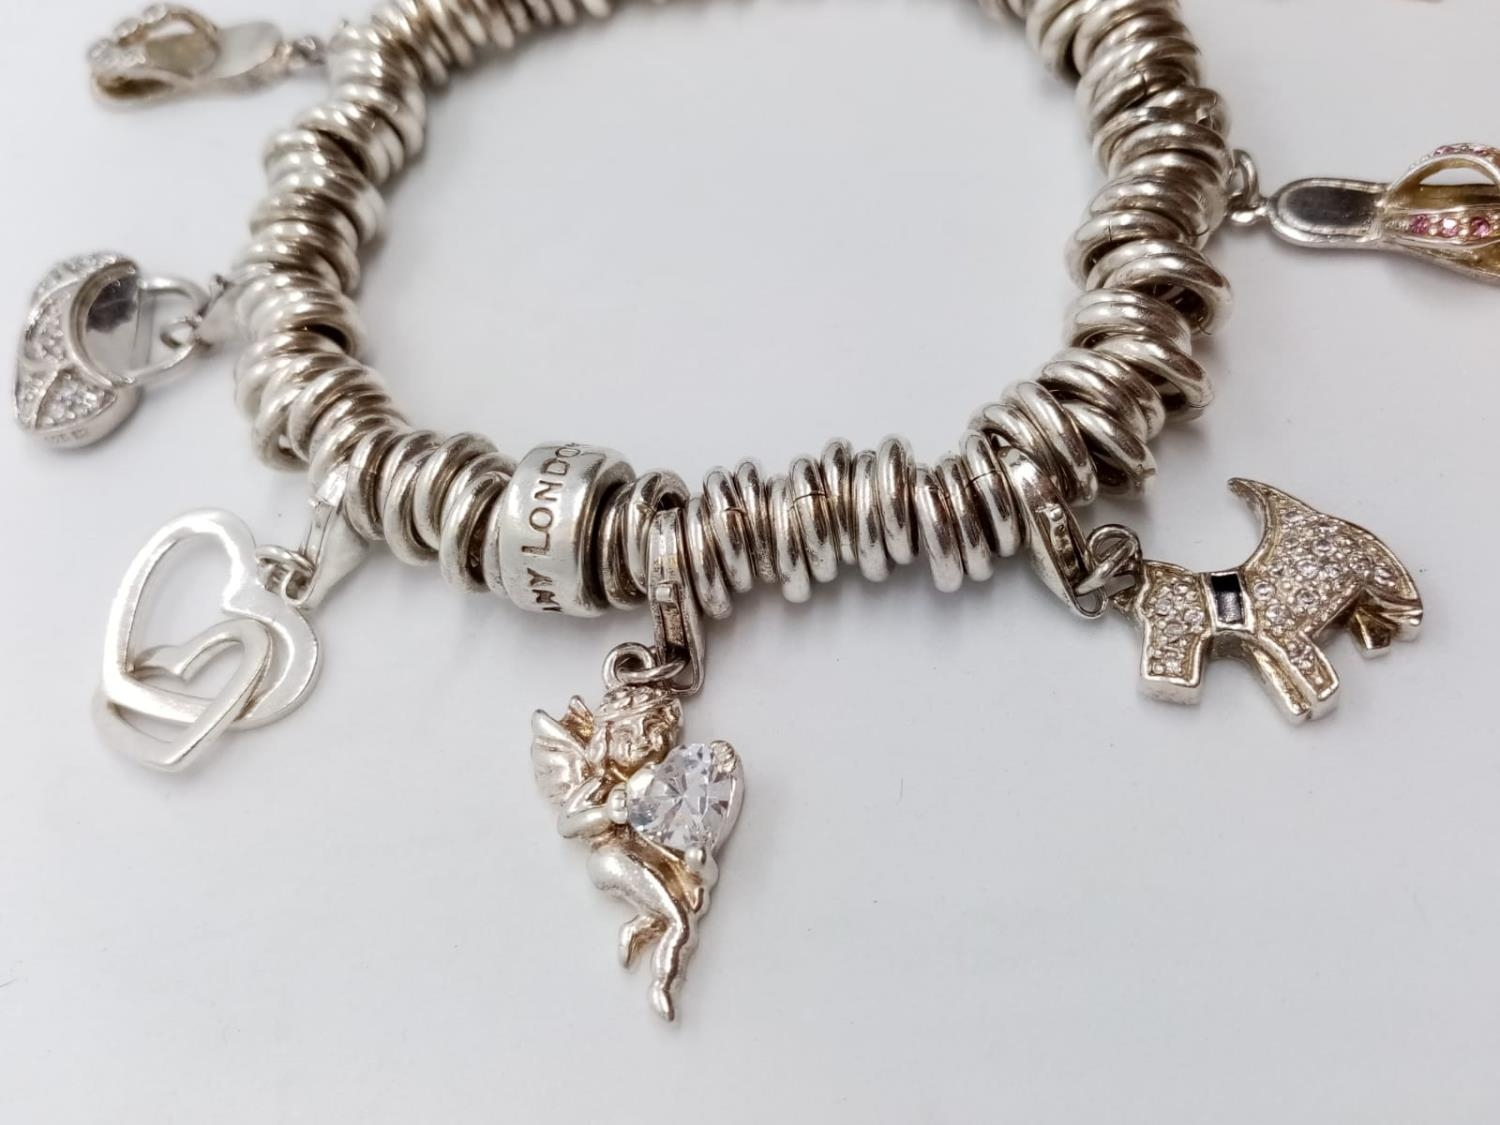 Heavy SILVER BRACELET, London Charm Co. 75.2g 10 charms. - Image 3 of 9